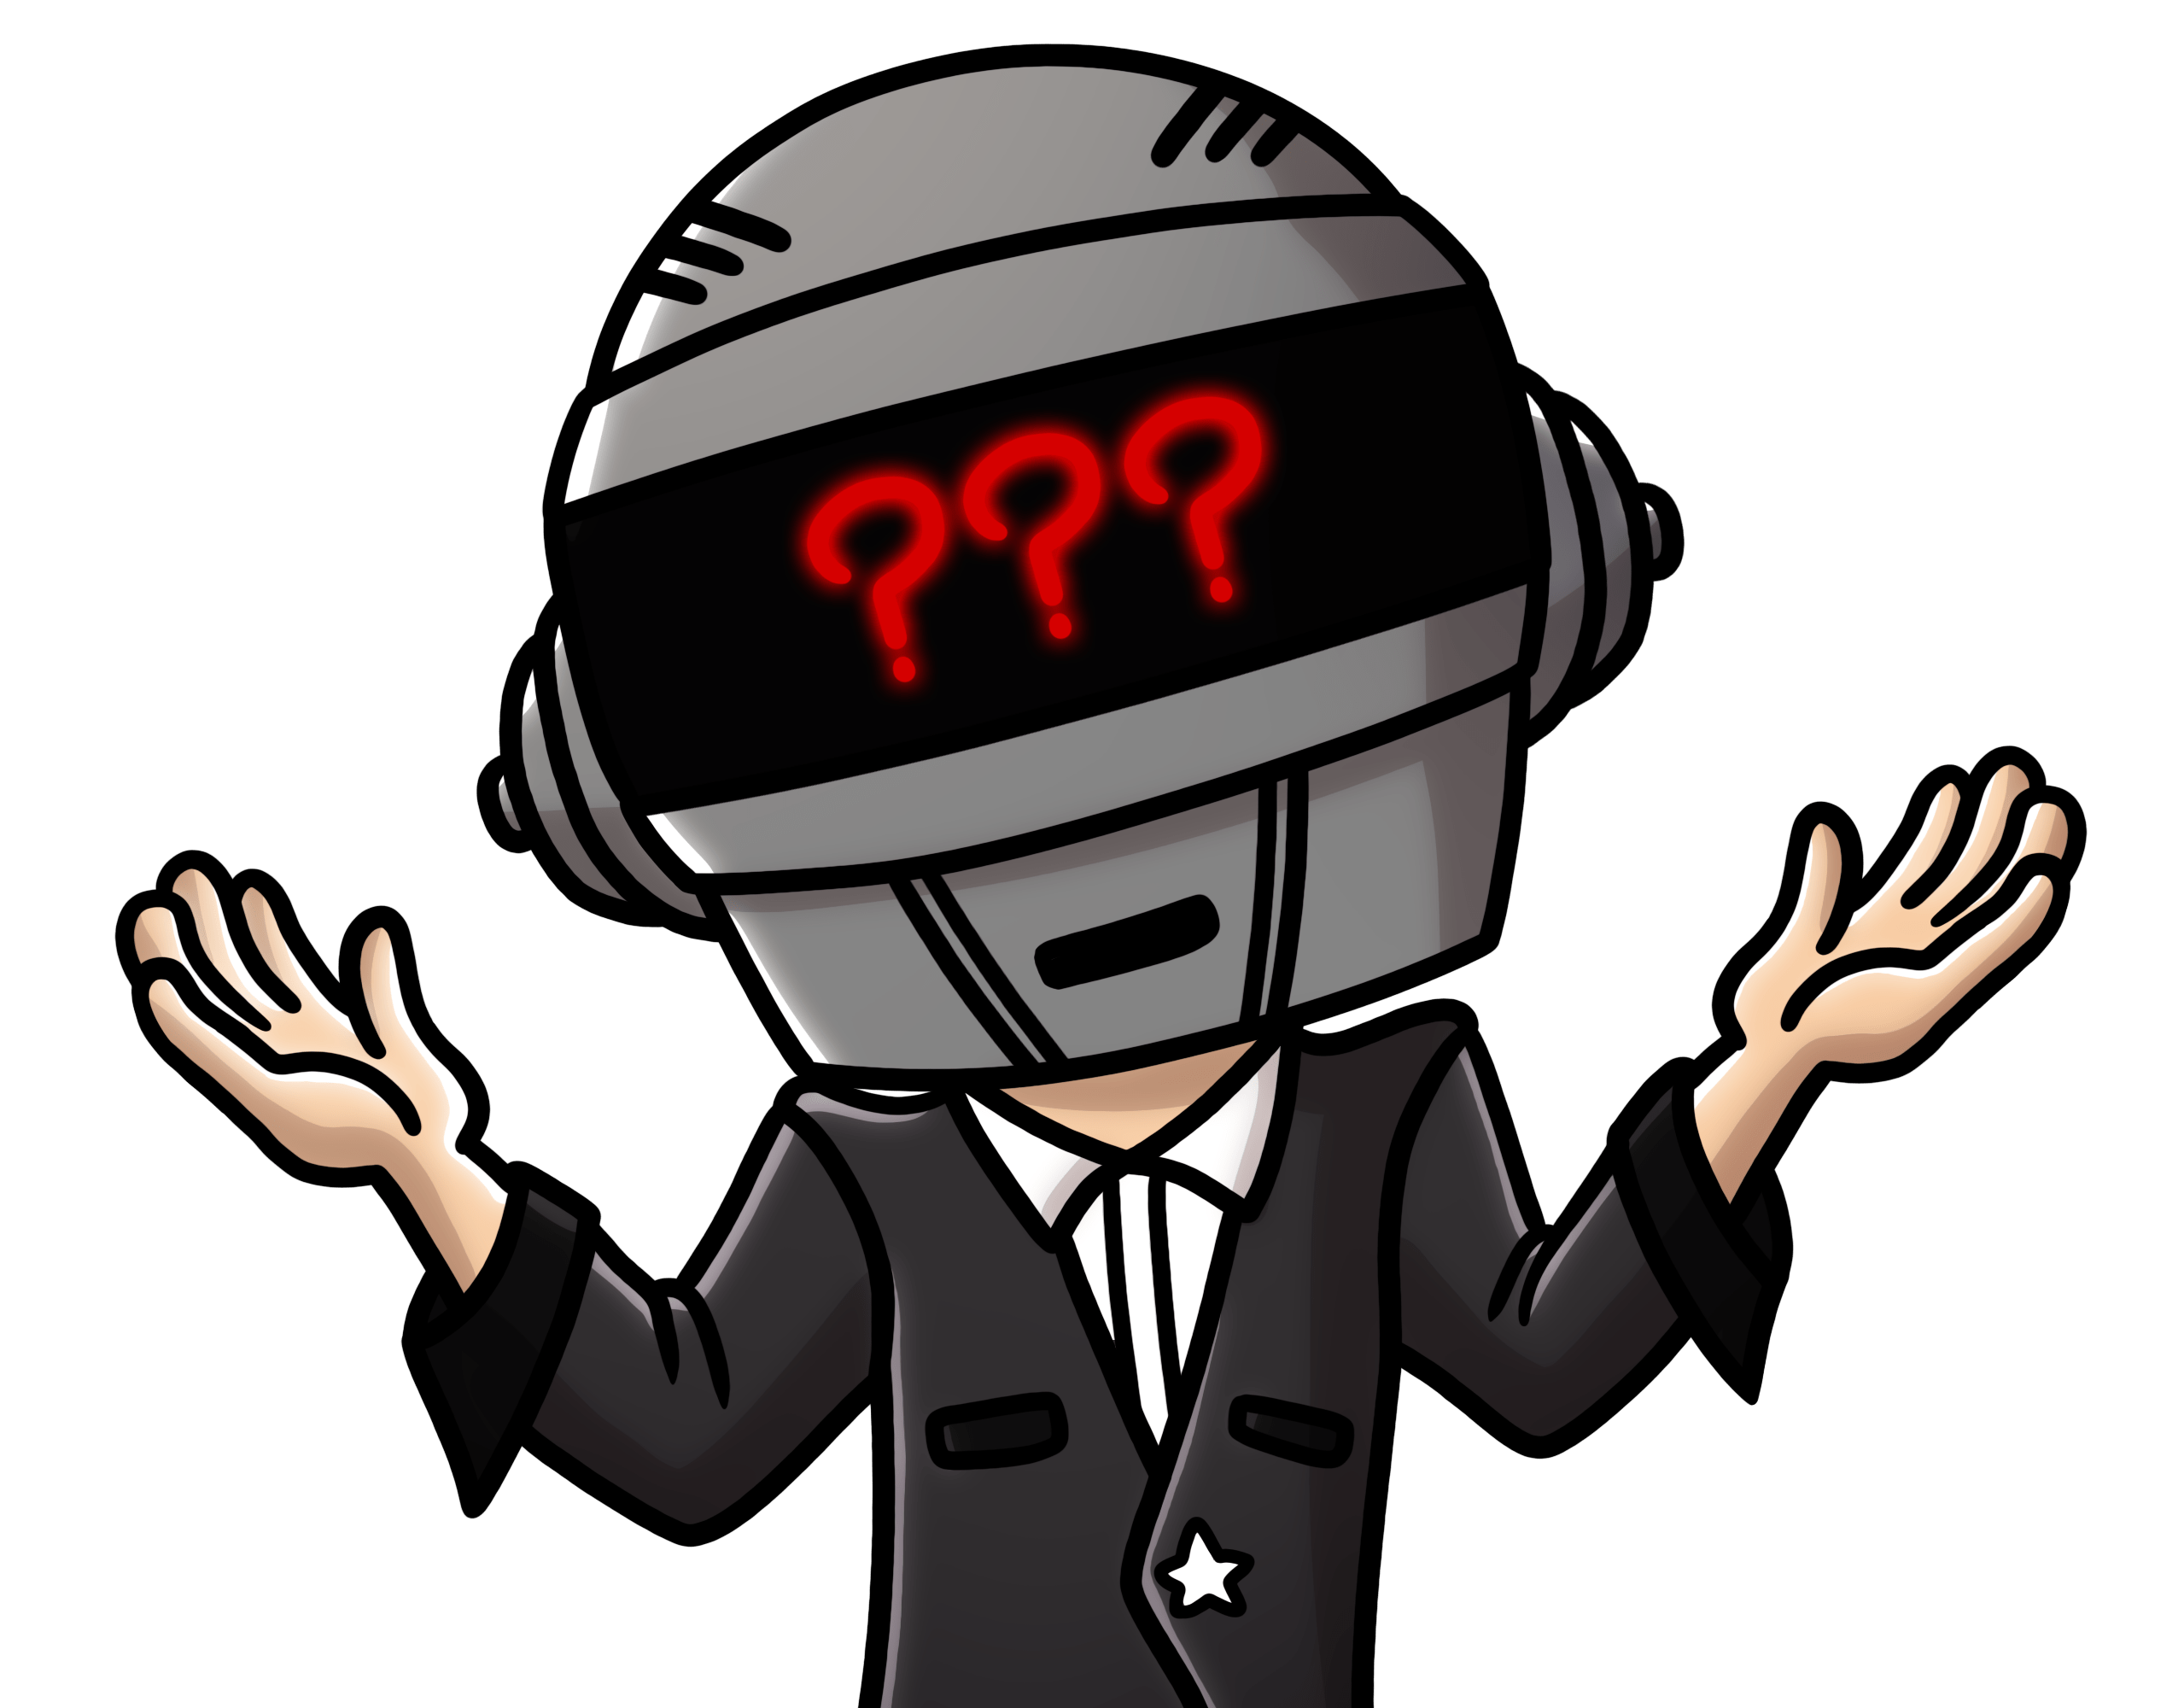 Graphic of man in suit wearing full-face helmet with 3 red question marks on the visor